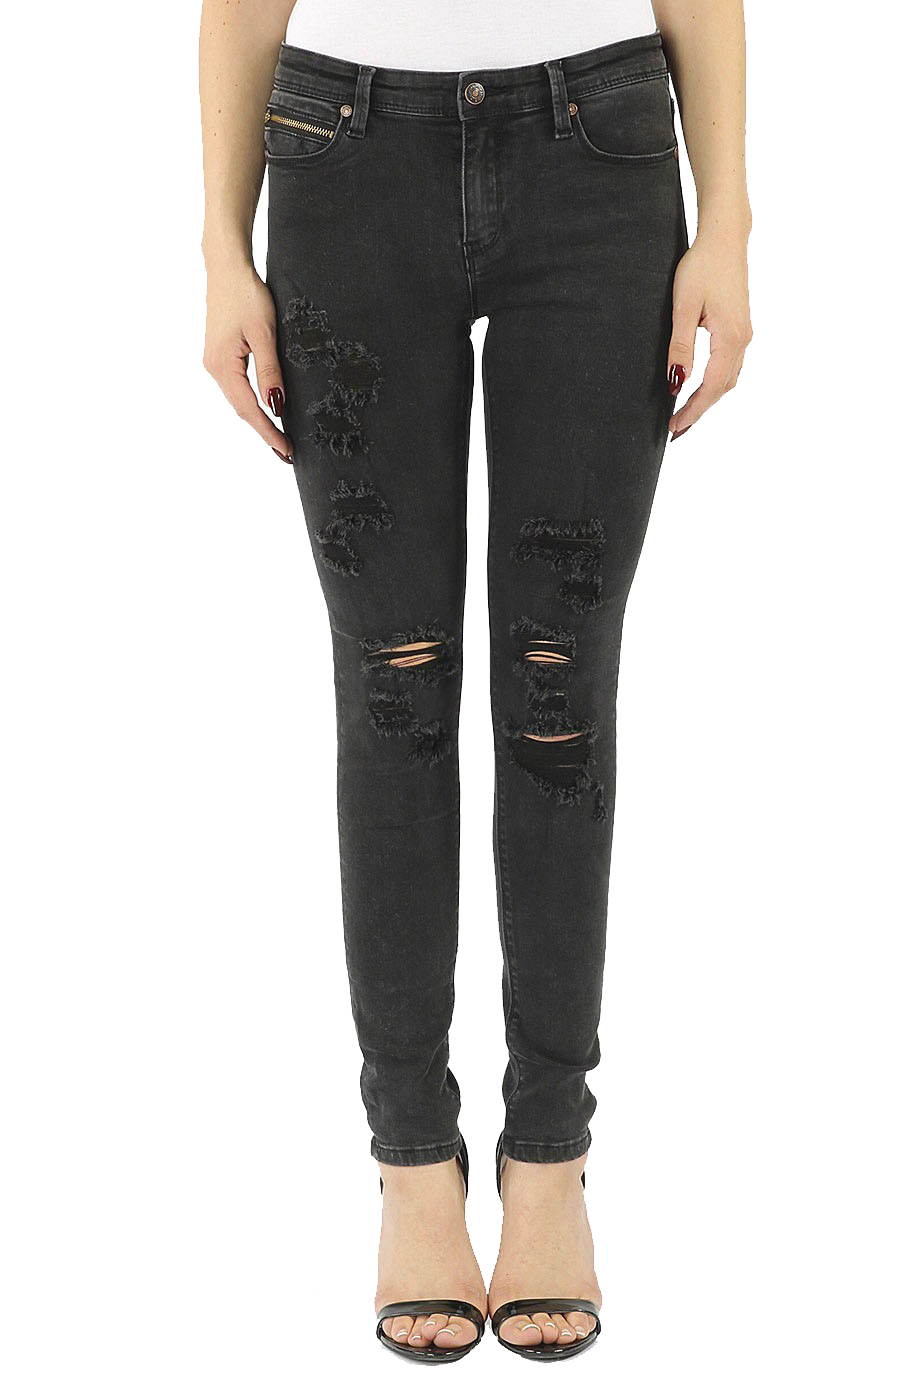 must have celebrity black stonewashed jeans